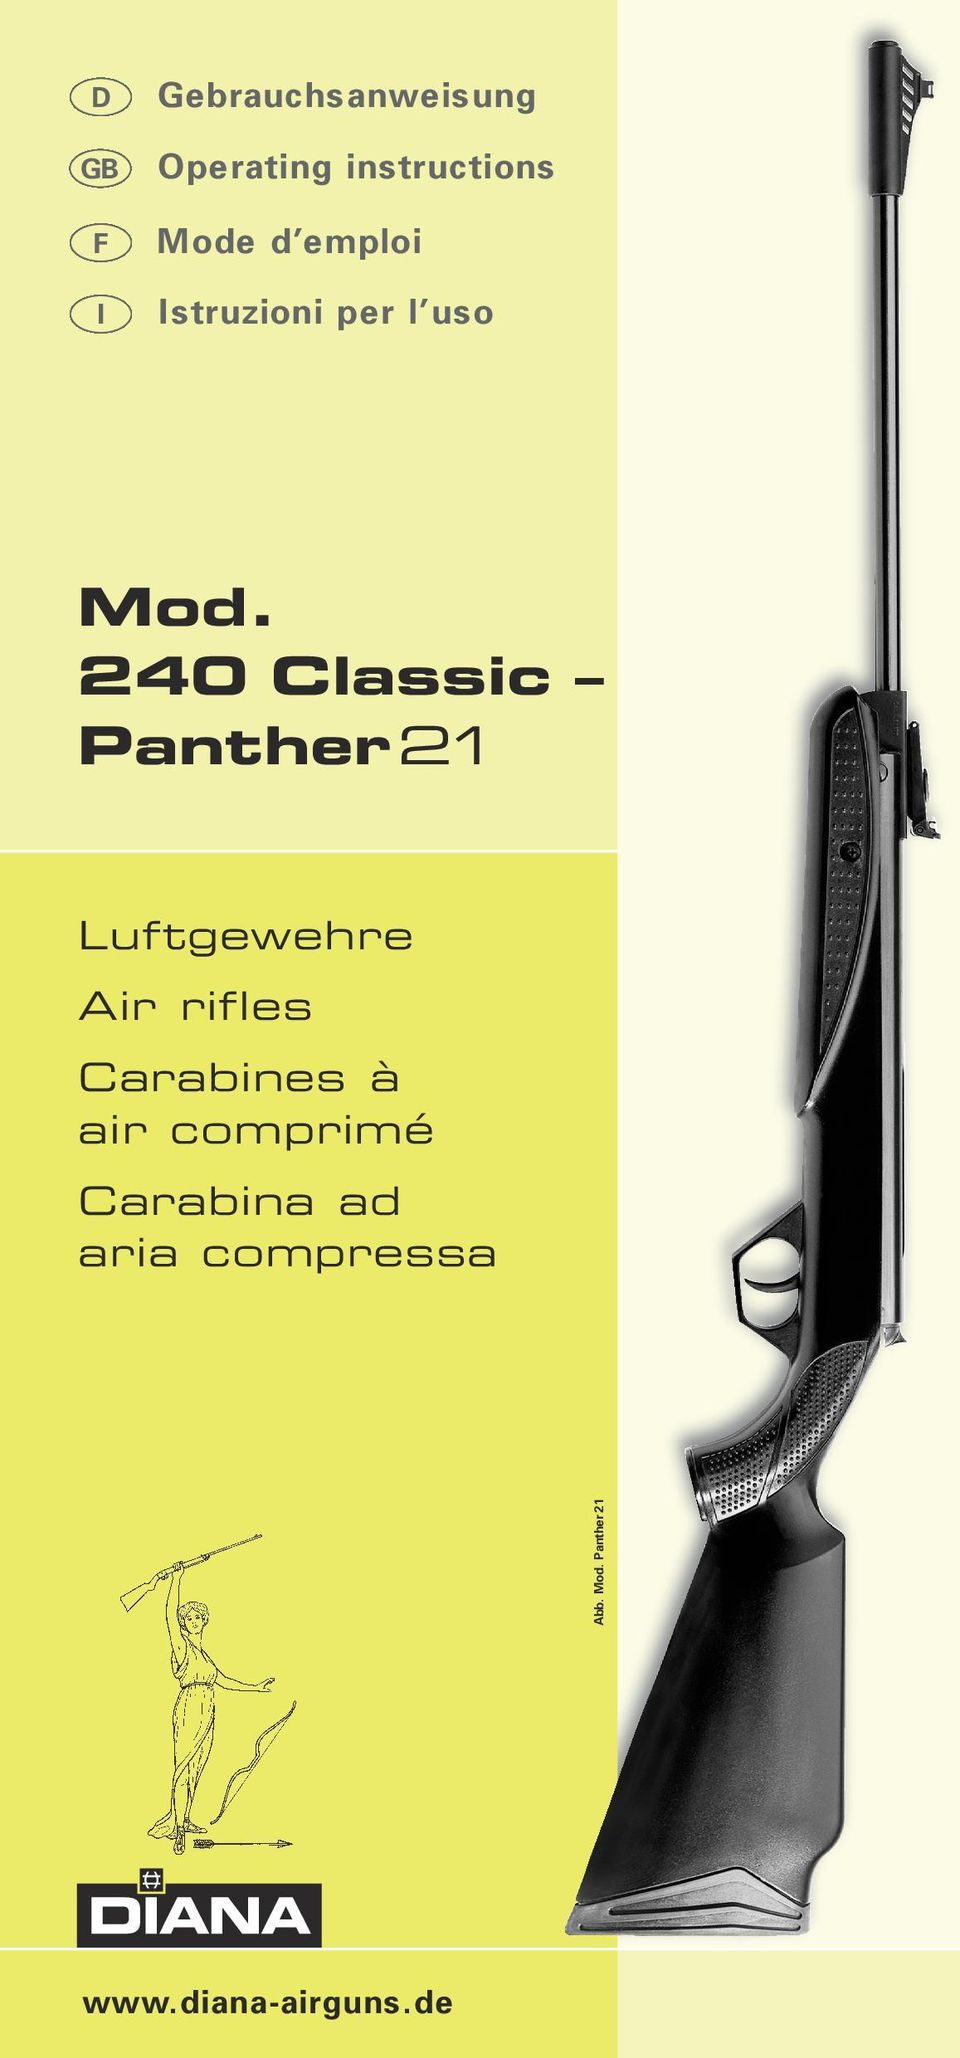 240 Classic Panther 21 Luftgewehre Air rifles Carabines à